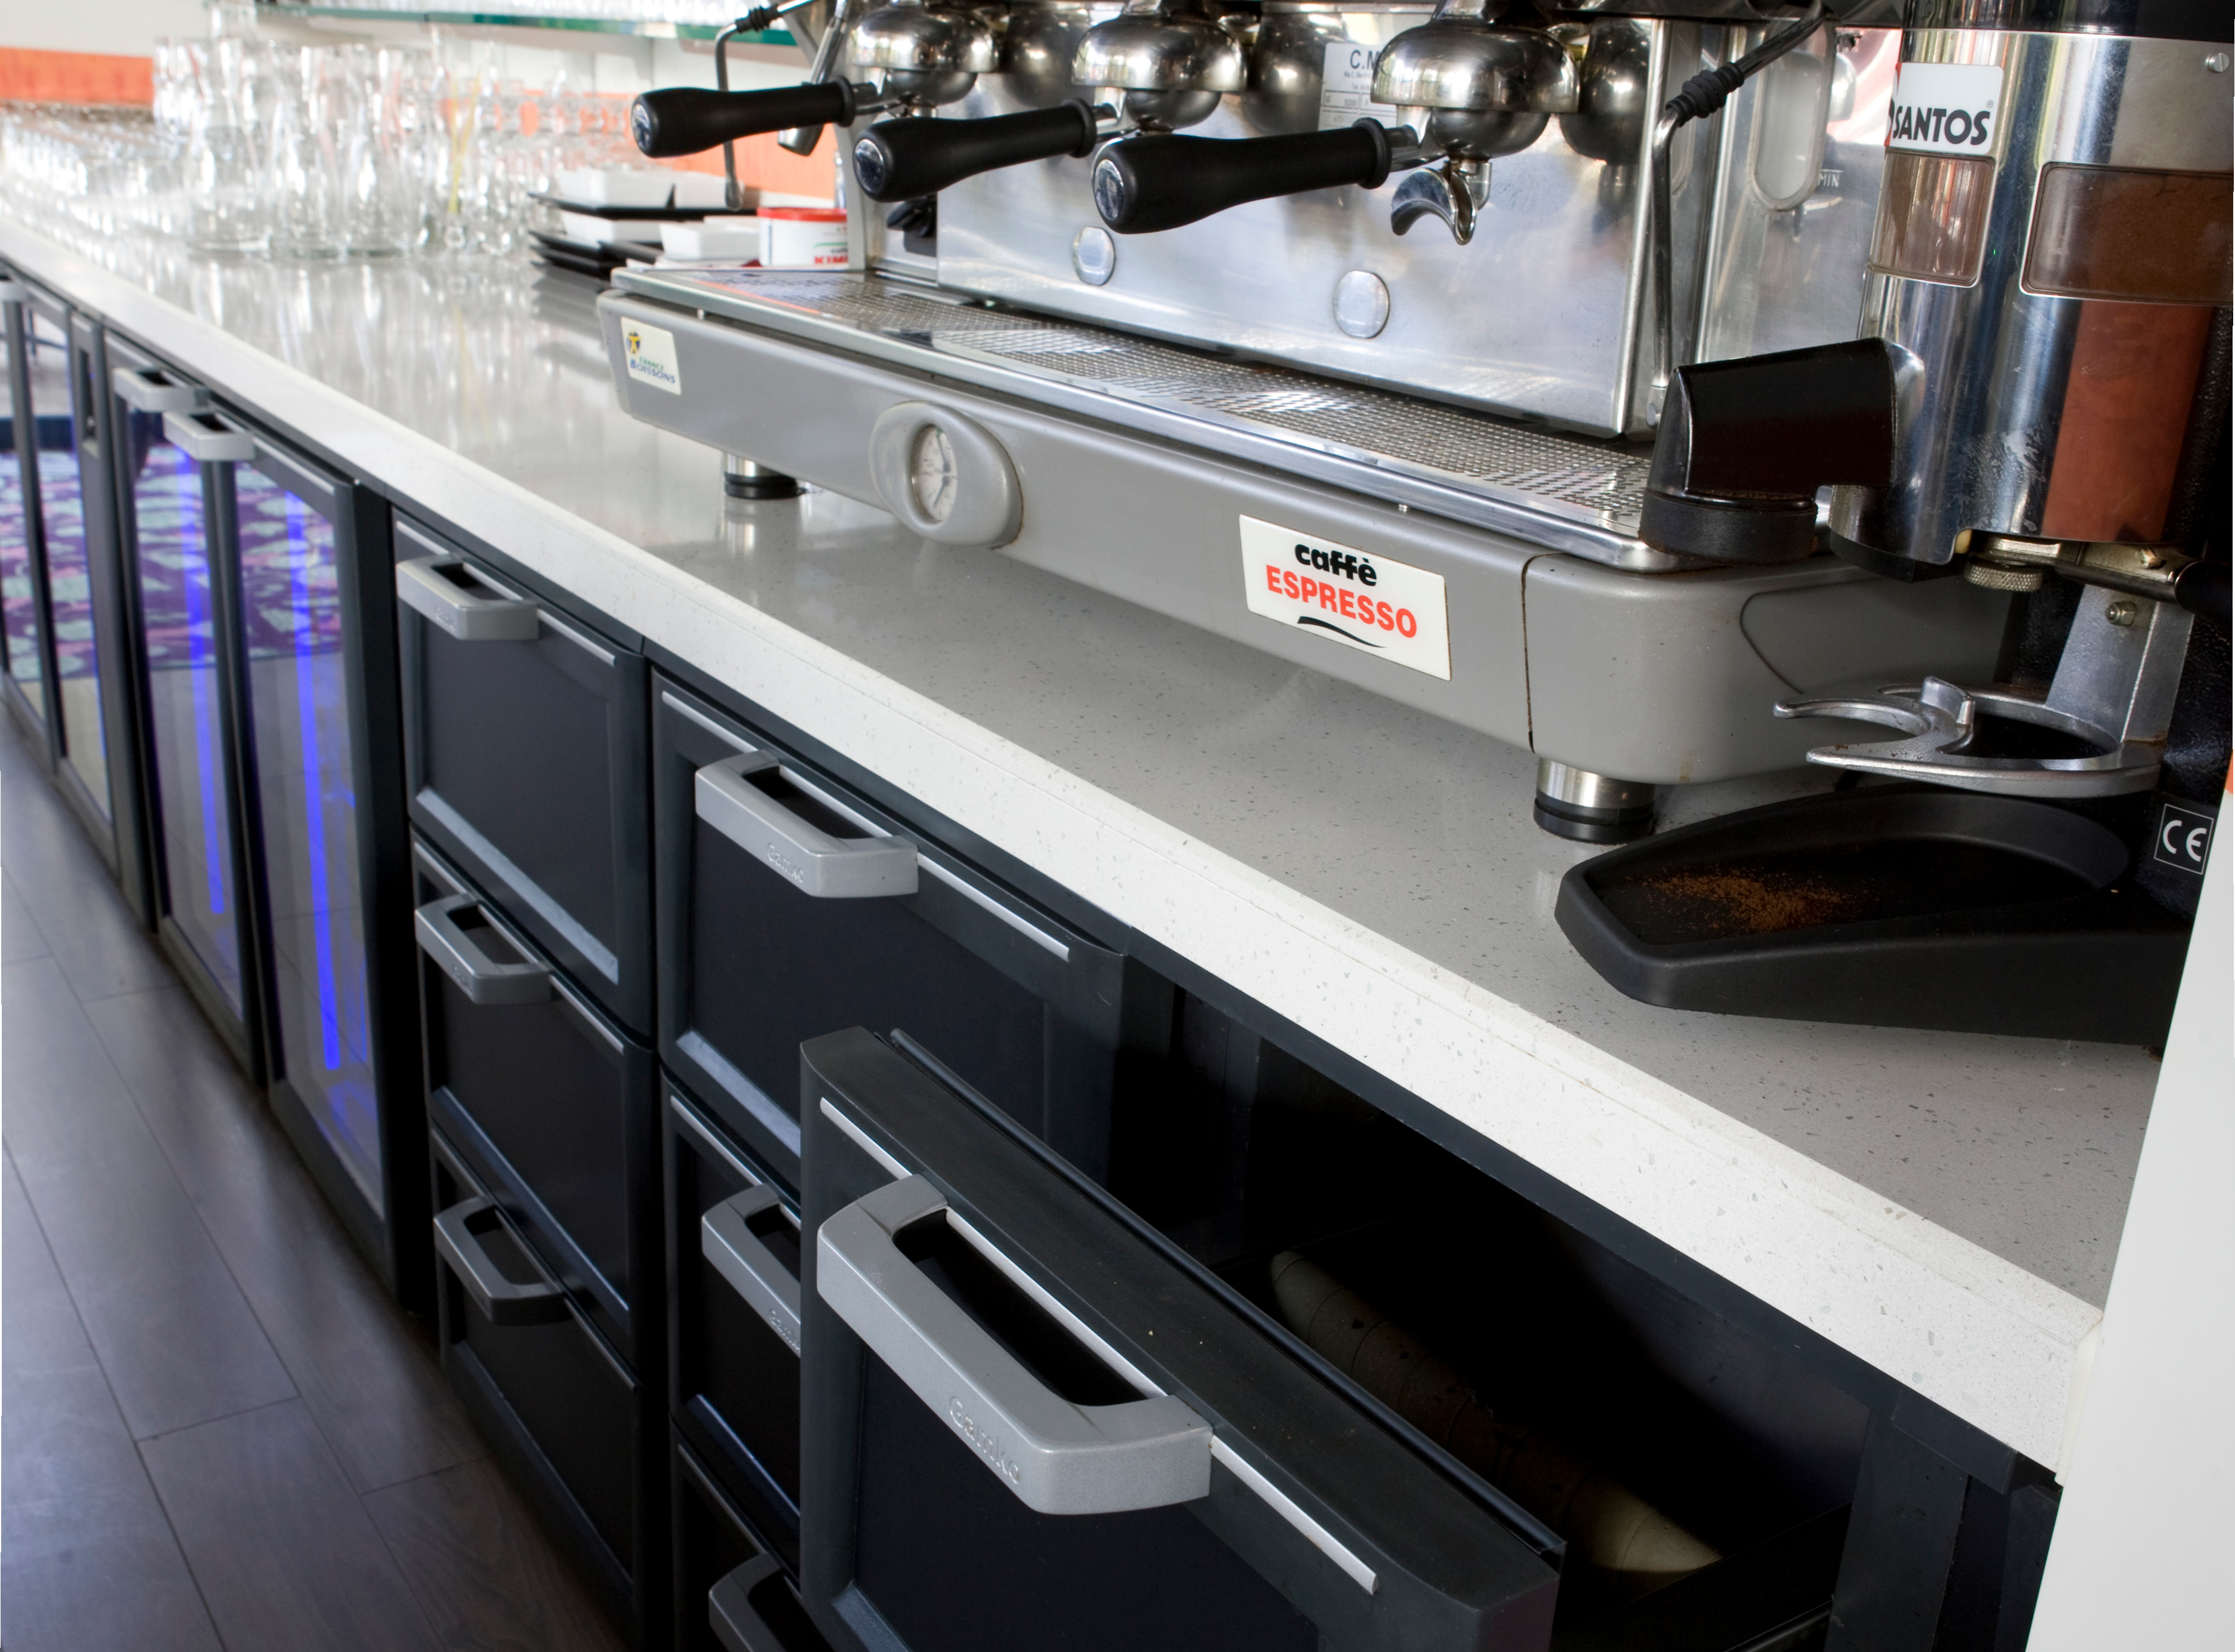 FLEXBAR barista station